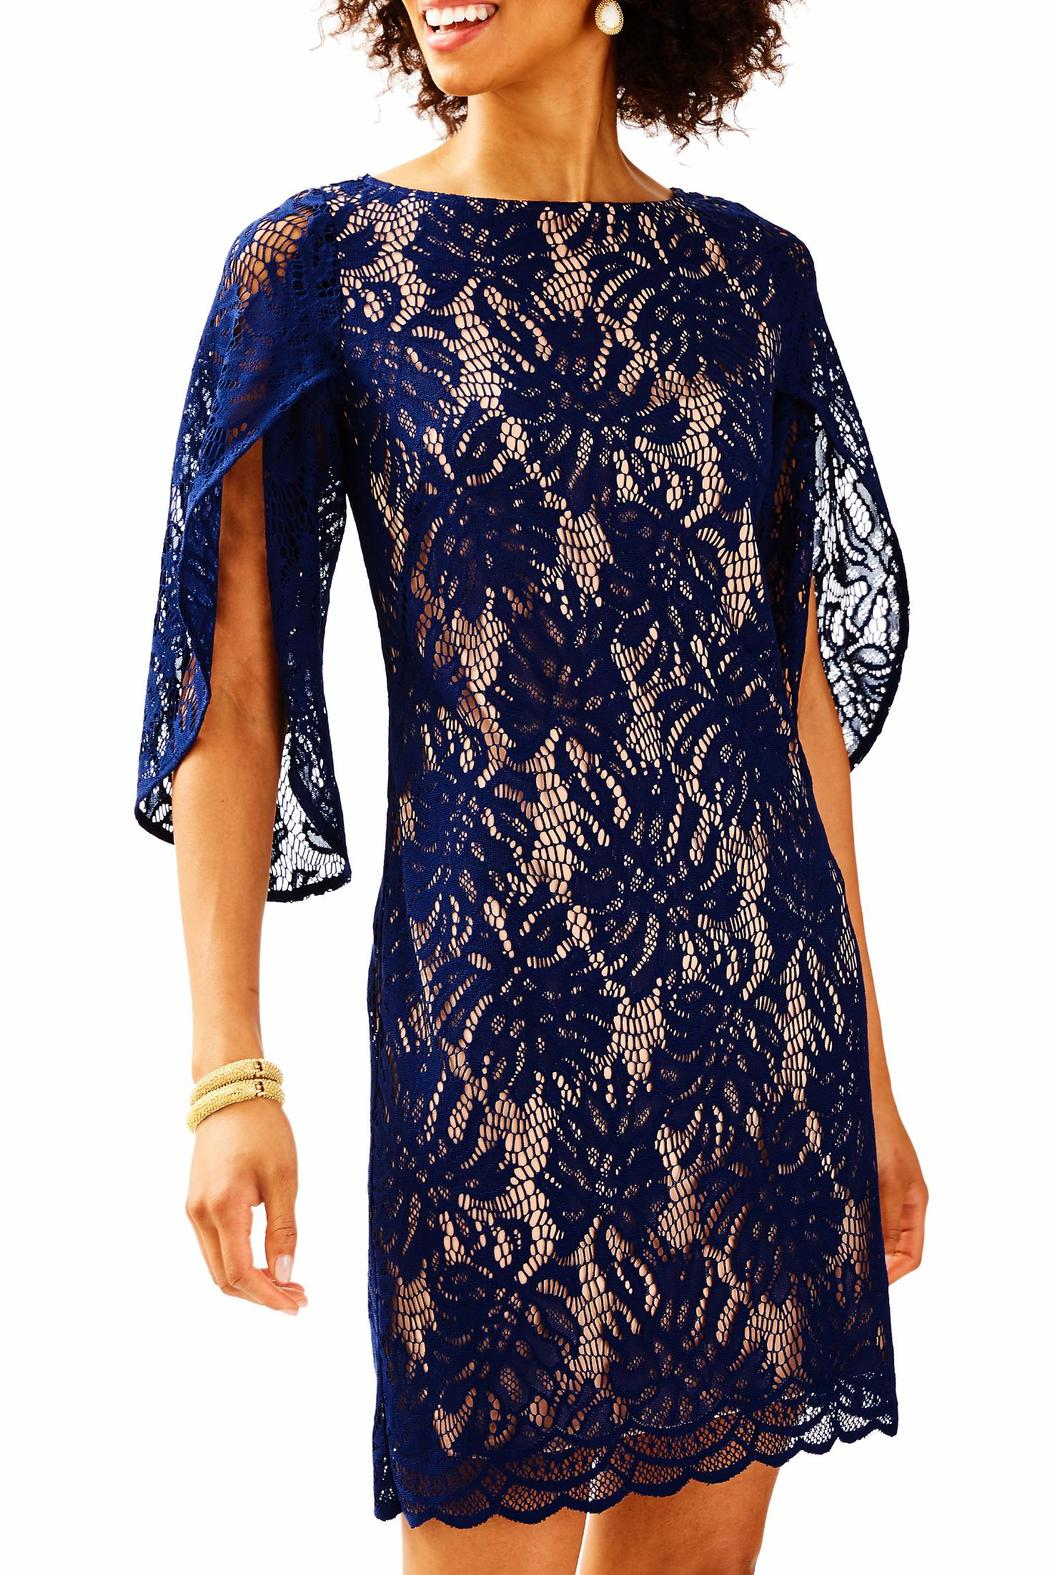 2afe1a03c31 Lilly Pulitzer Butterfly Dress - Best Image Of Butterfly Imagevet.Co